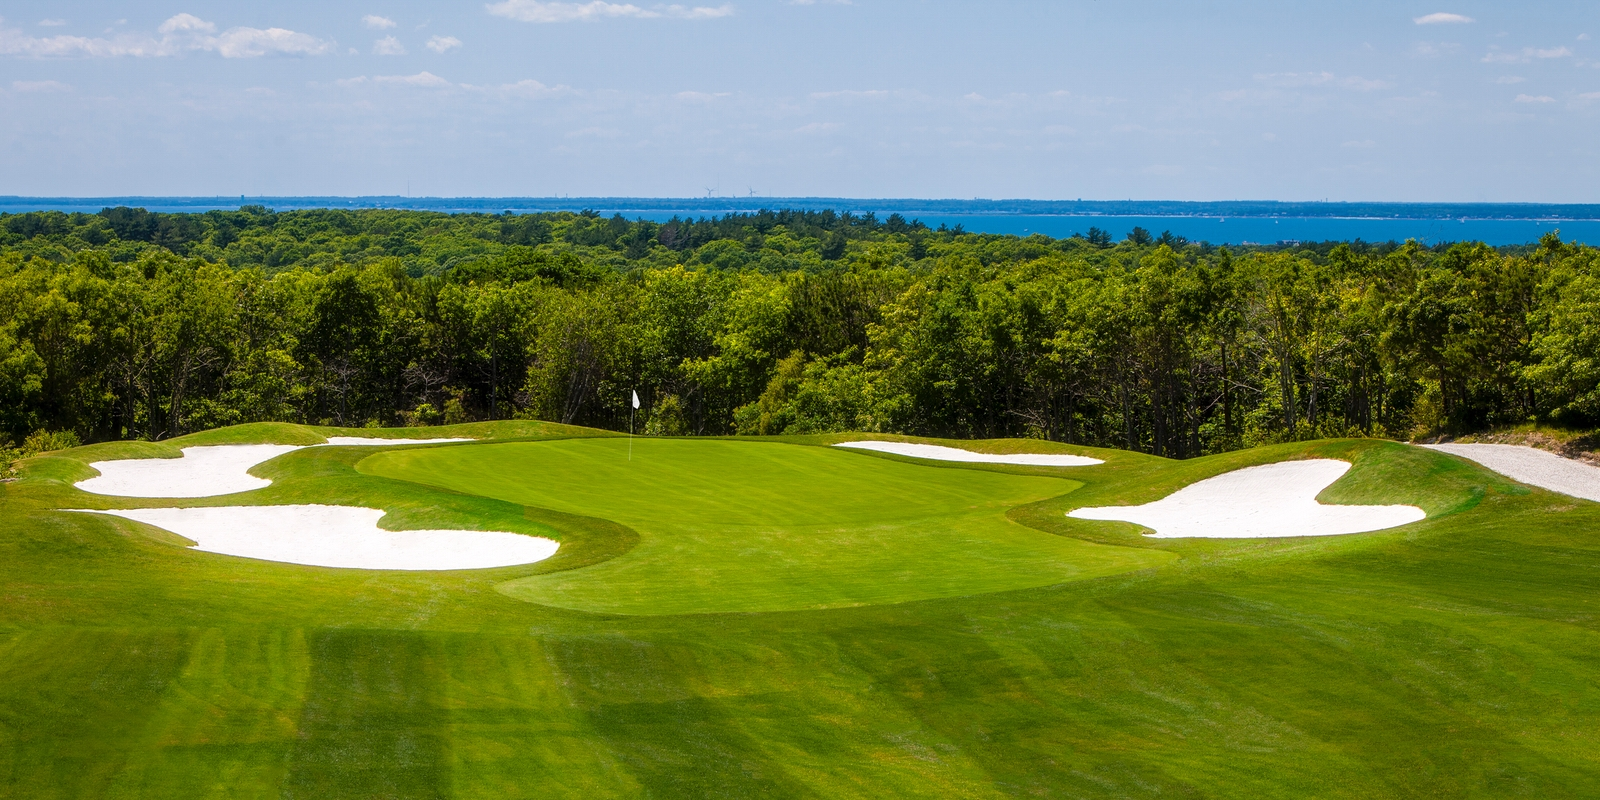 The Cape Club by Troon - Cape Cod Golf - Falmouth, Mass.